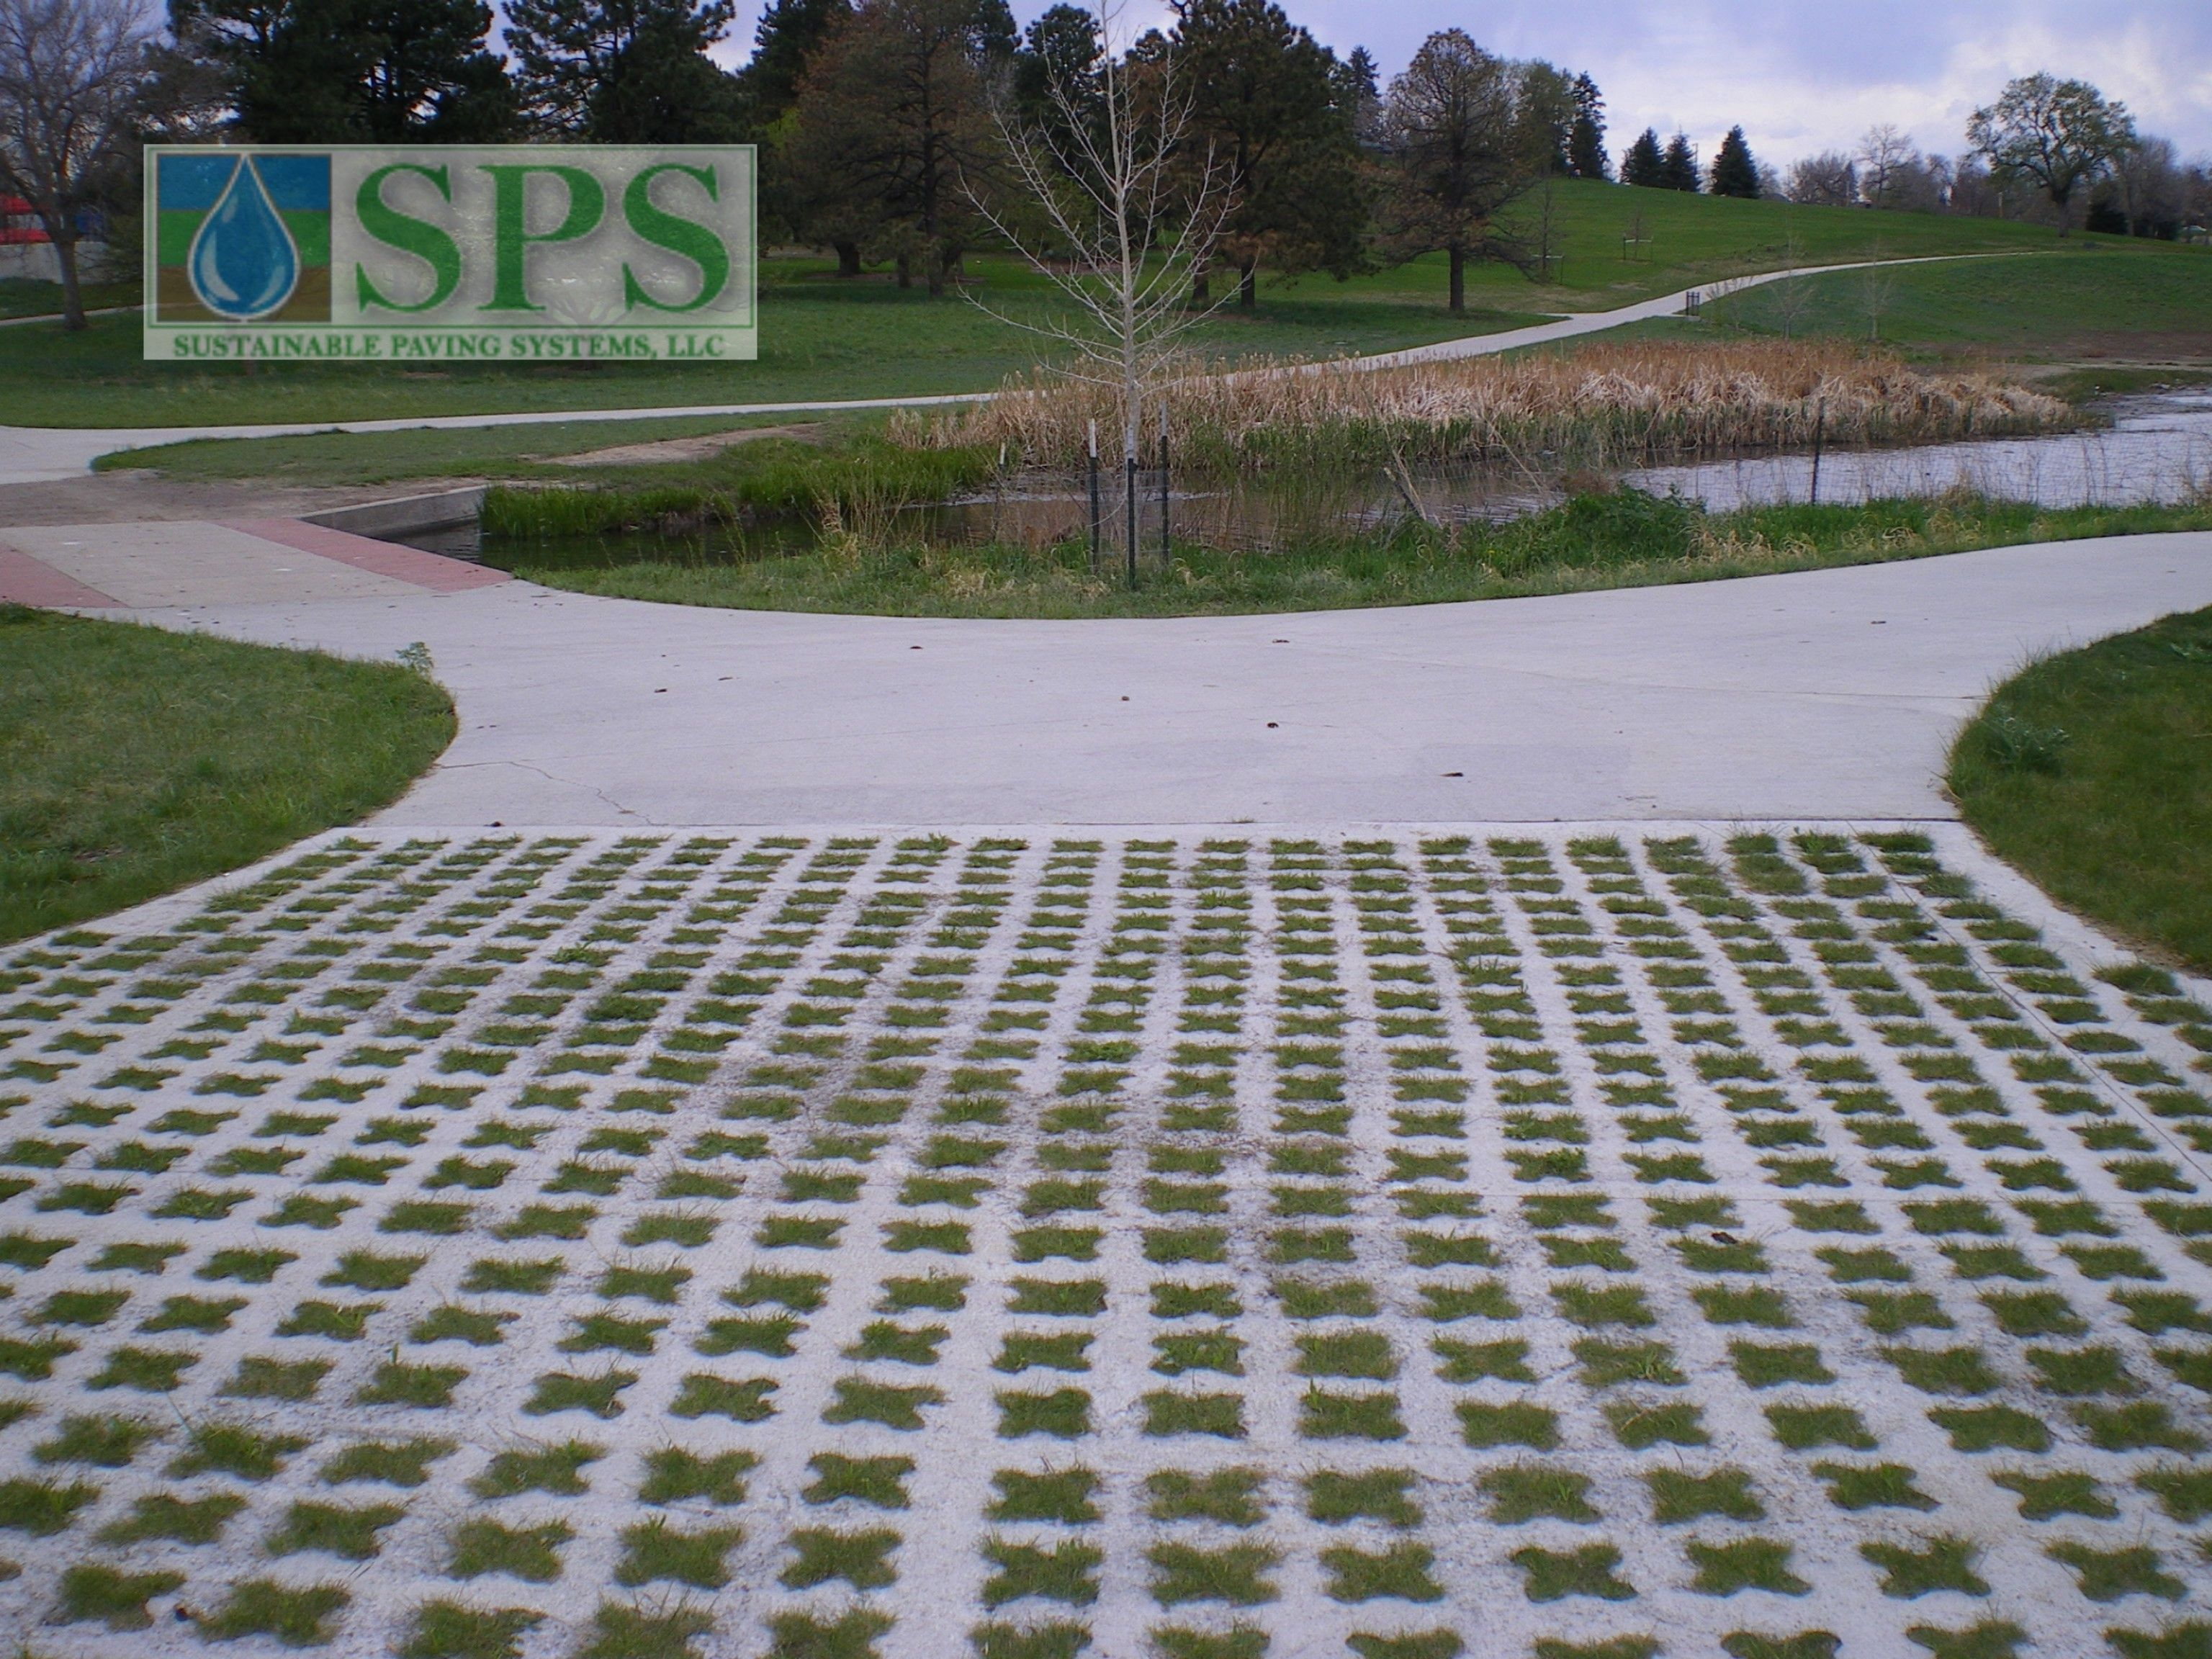 Grasscrete was the ideal choice for this site, allowing water to pass freely through, while maintaining structural integrity and preserving visual appeal.